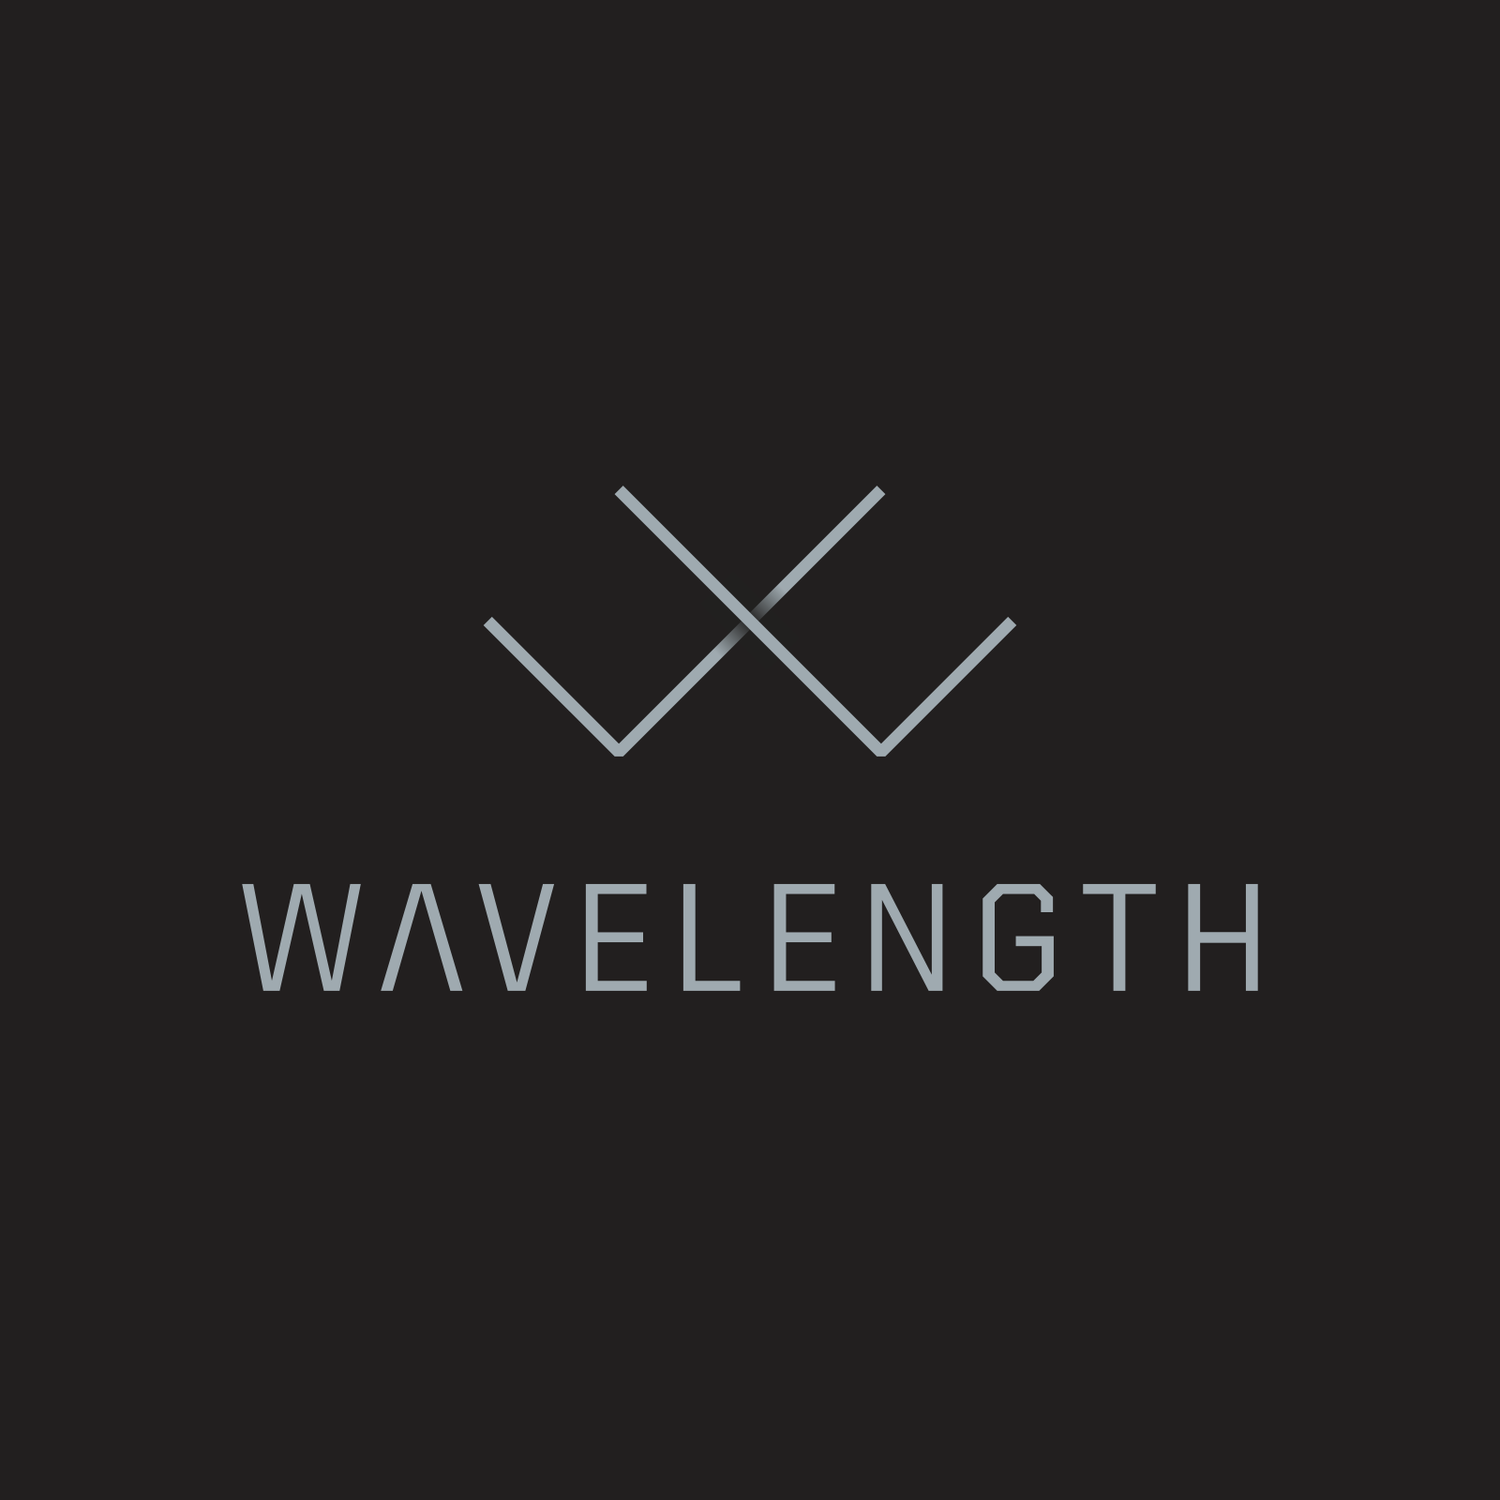 Wavelength - Brave Wave Productions